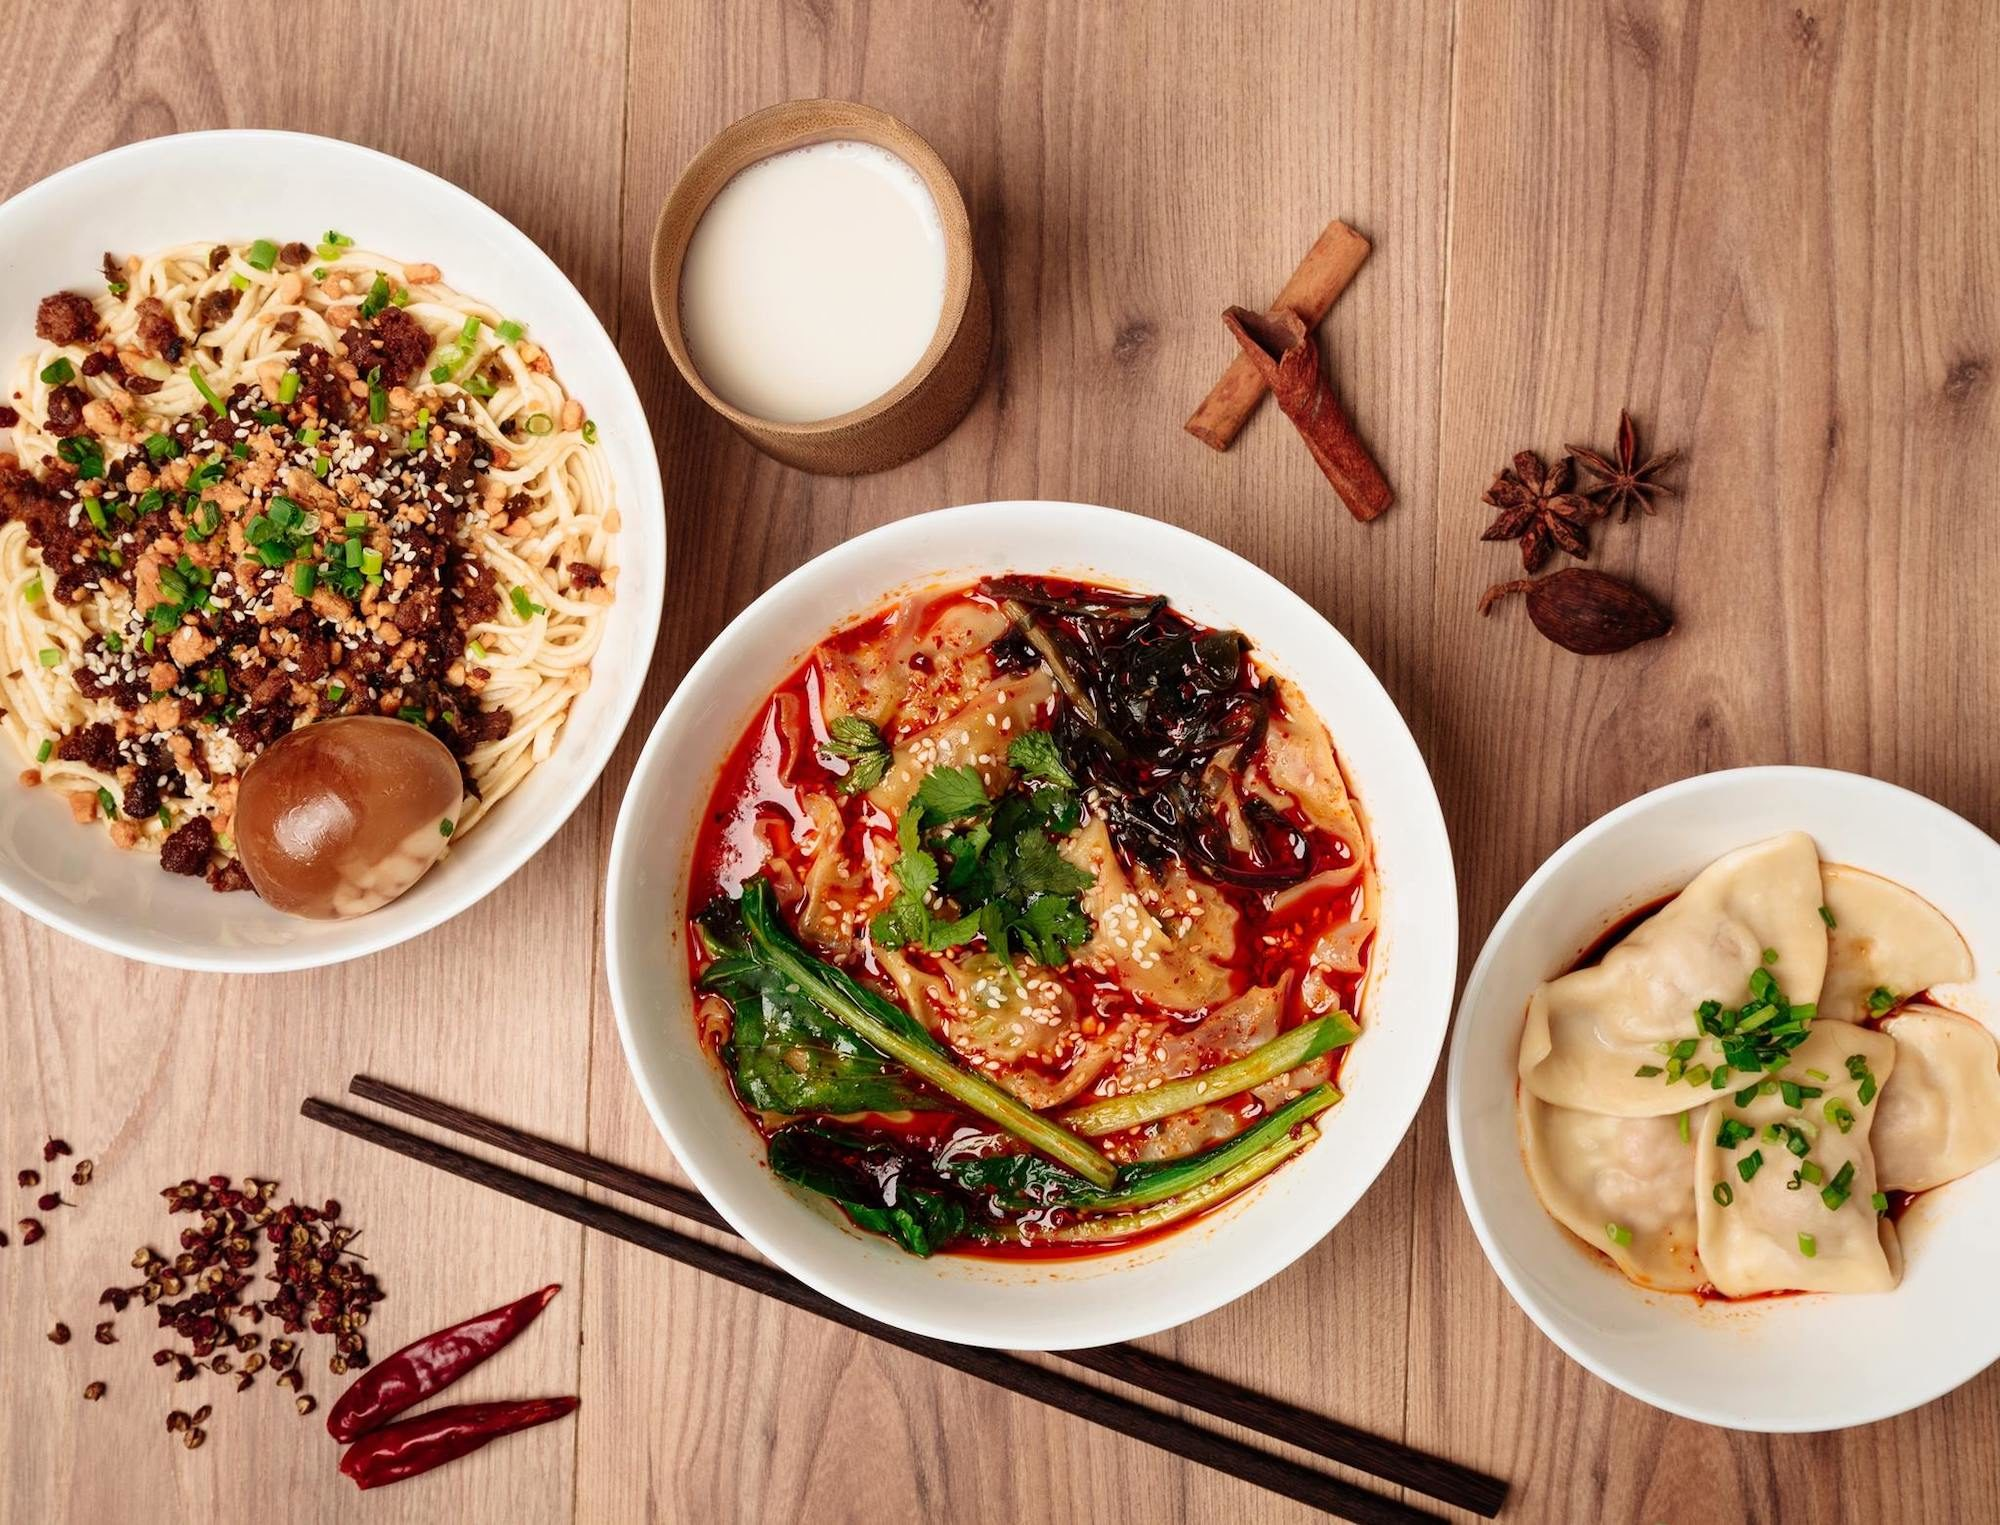 One of the best restaurants for authentic Chinese food in Paris' South Pigalle is L'Atelier Mala, and we love their generously served noodle soup bowls and raviolis.